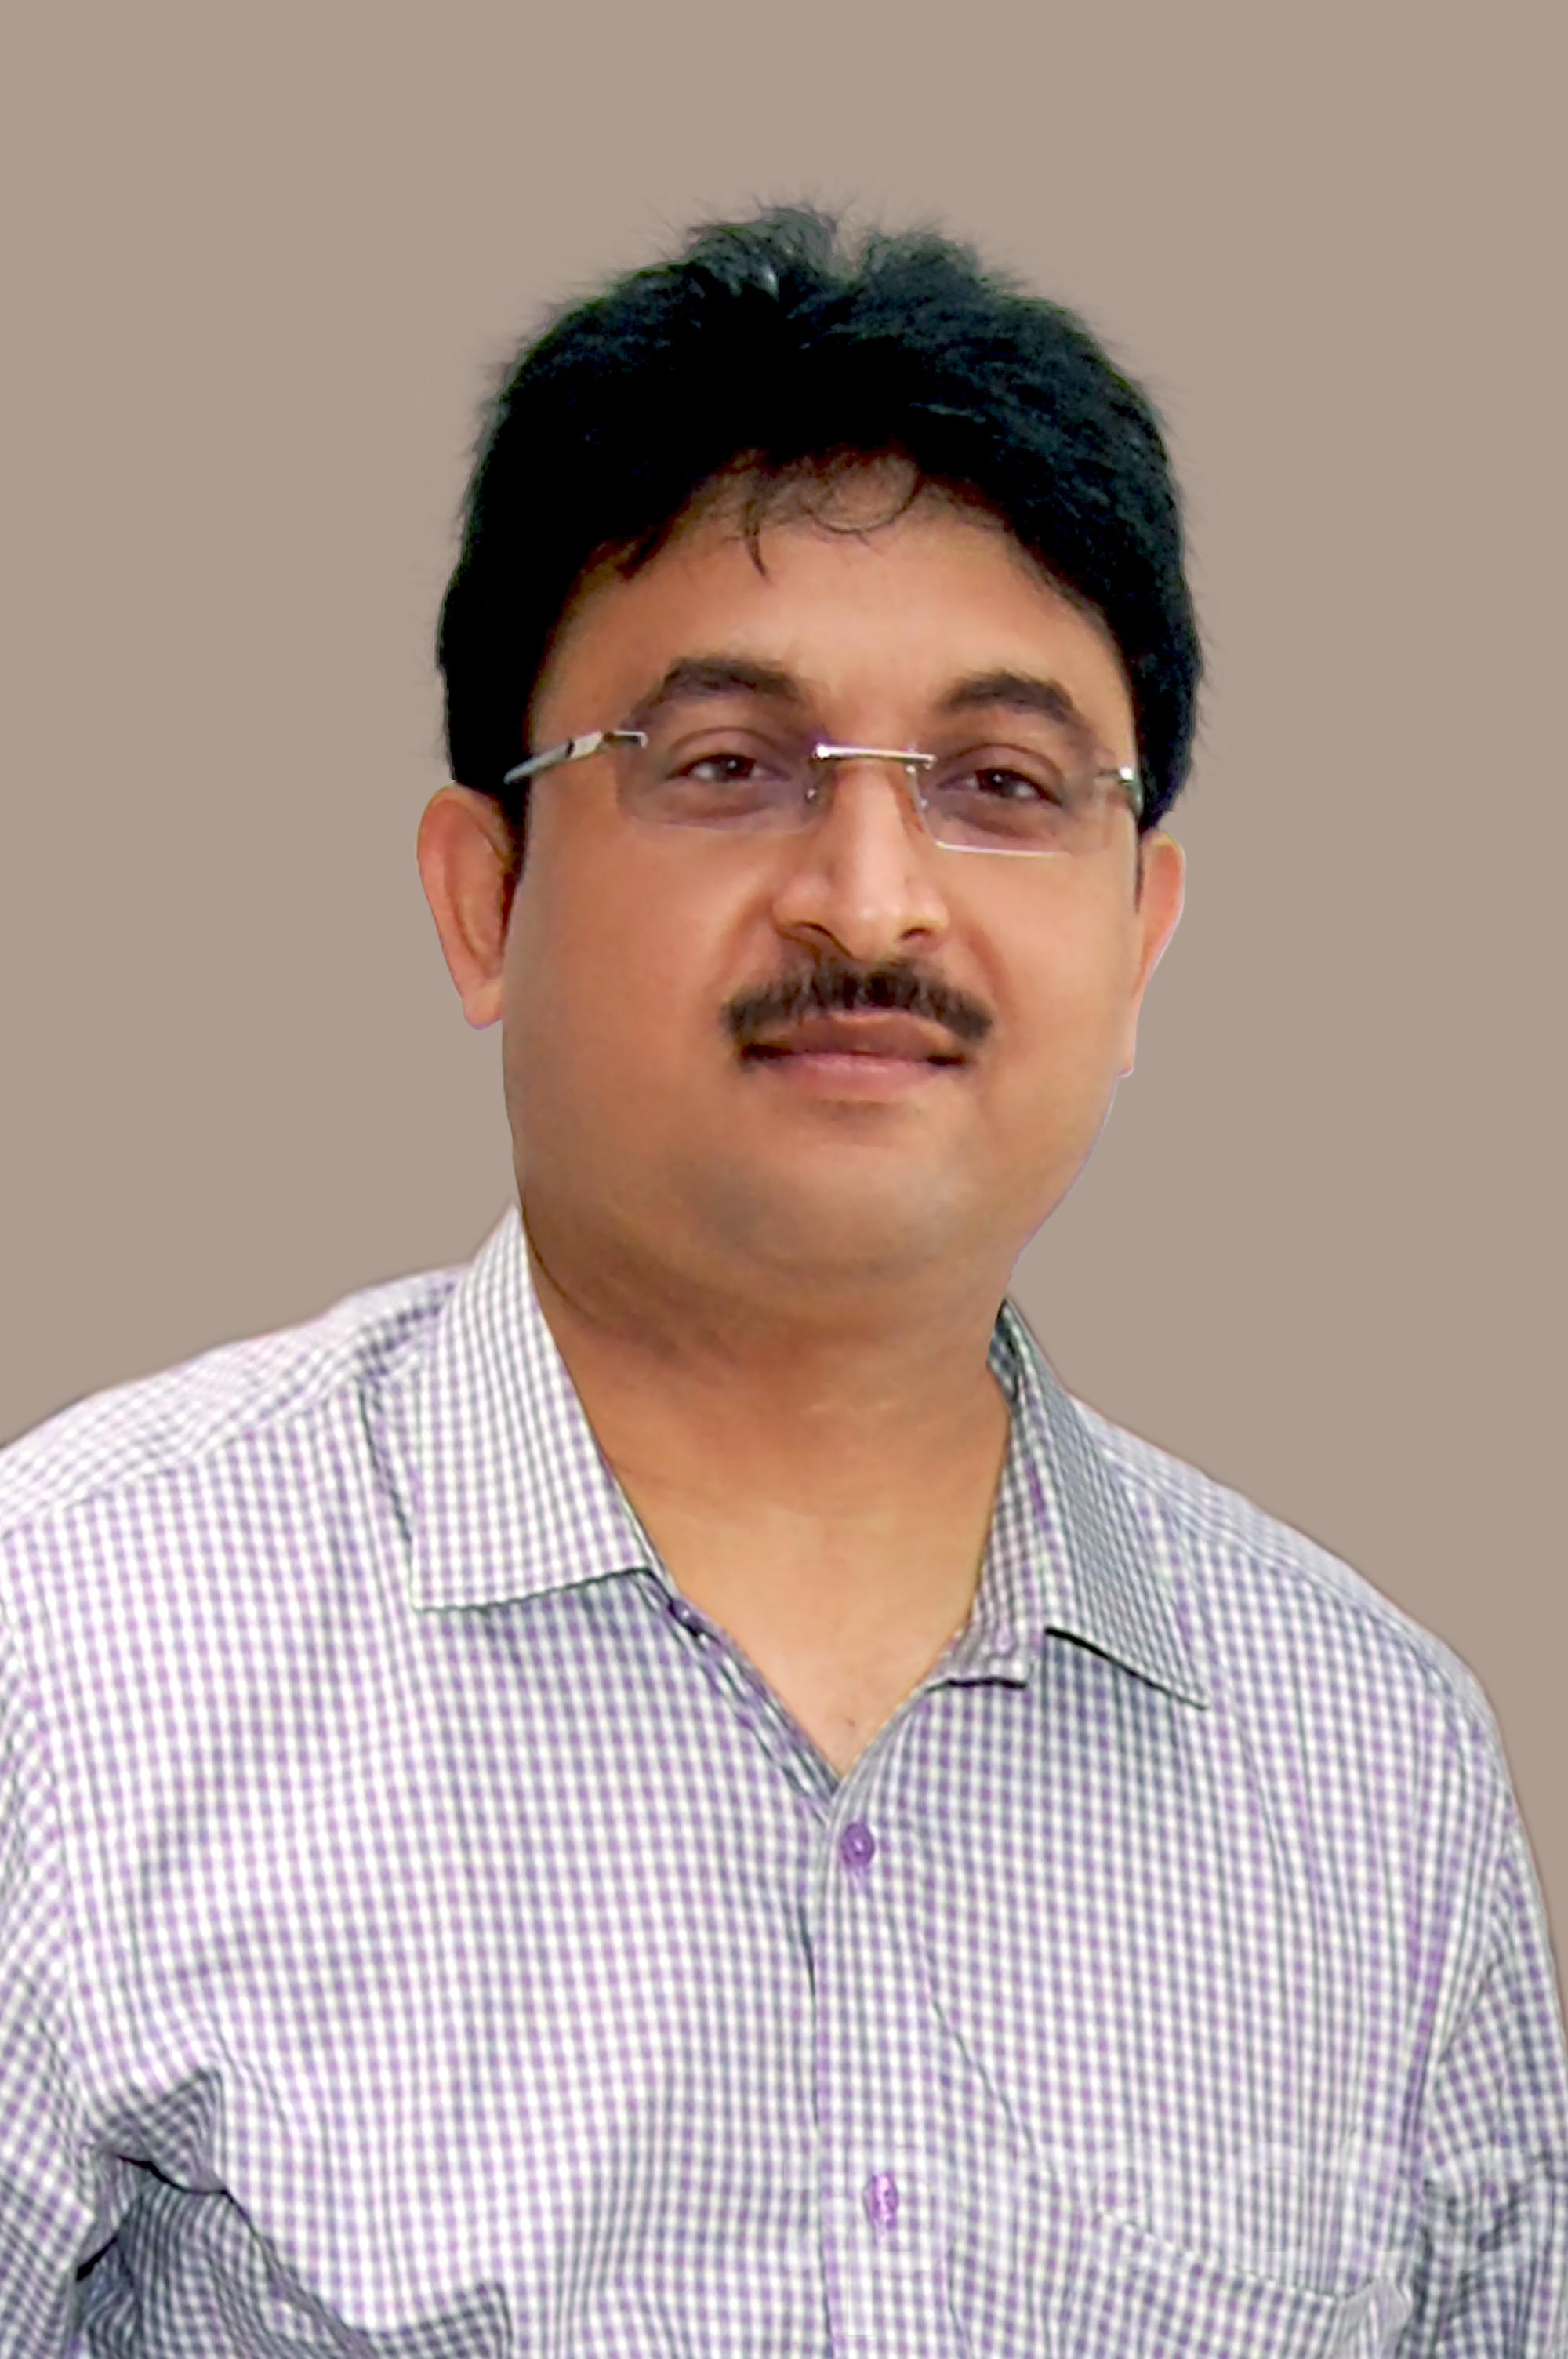 Dr. C. Chandra Sehkar - General Surgeon